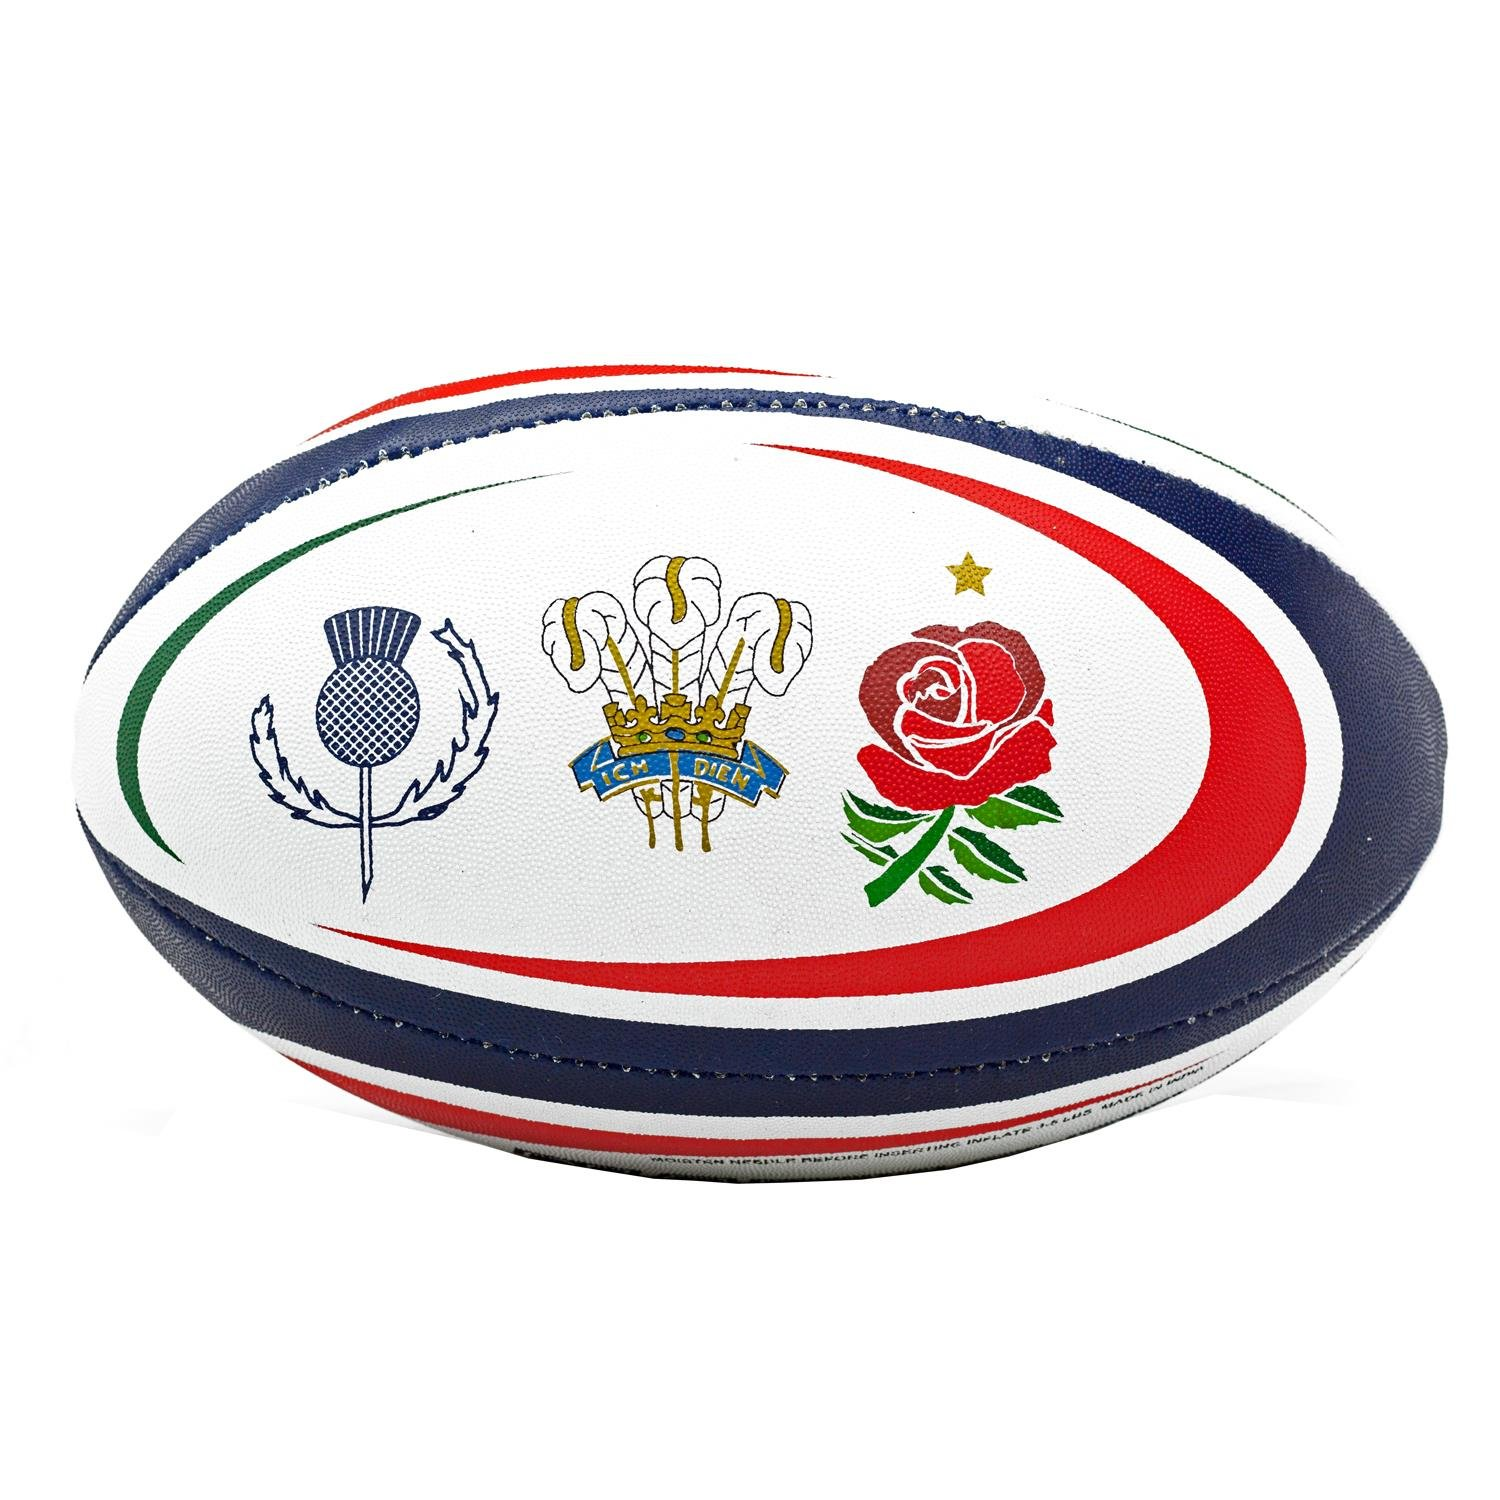 6 Nations Supporters Rugby Ball - Size 5 | England | France | Ireland | Italy |Scotland | Wales Williams Connaught